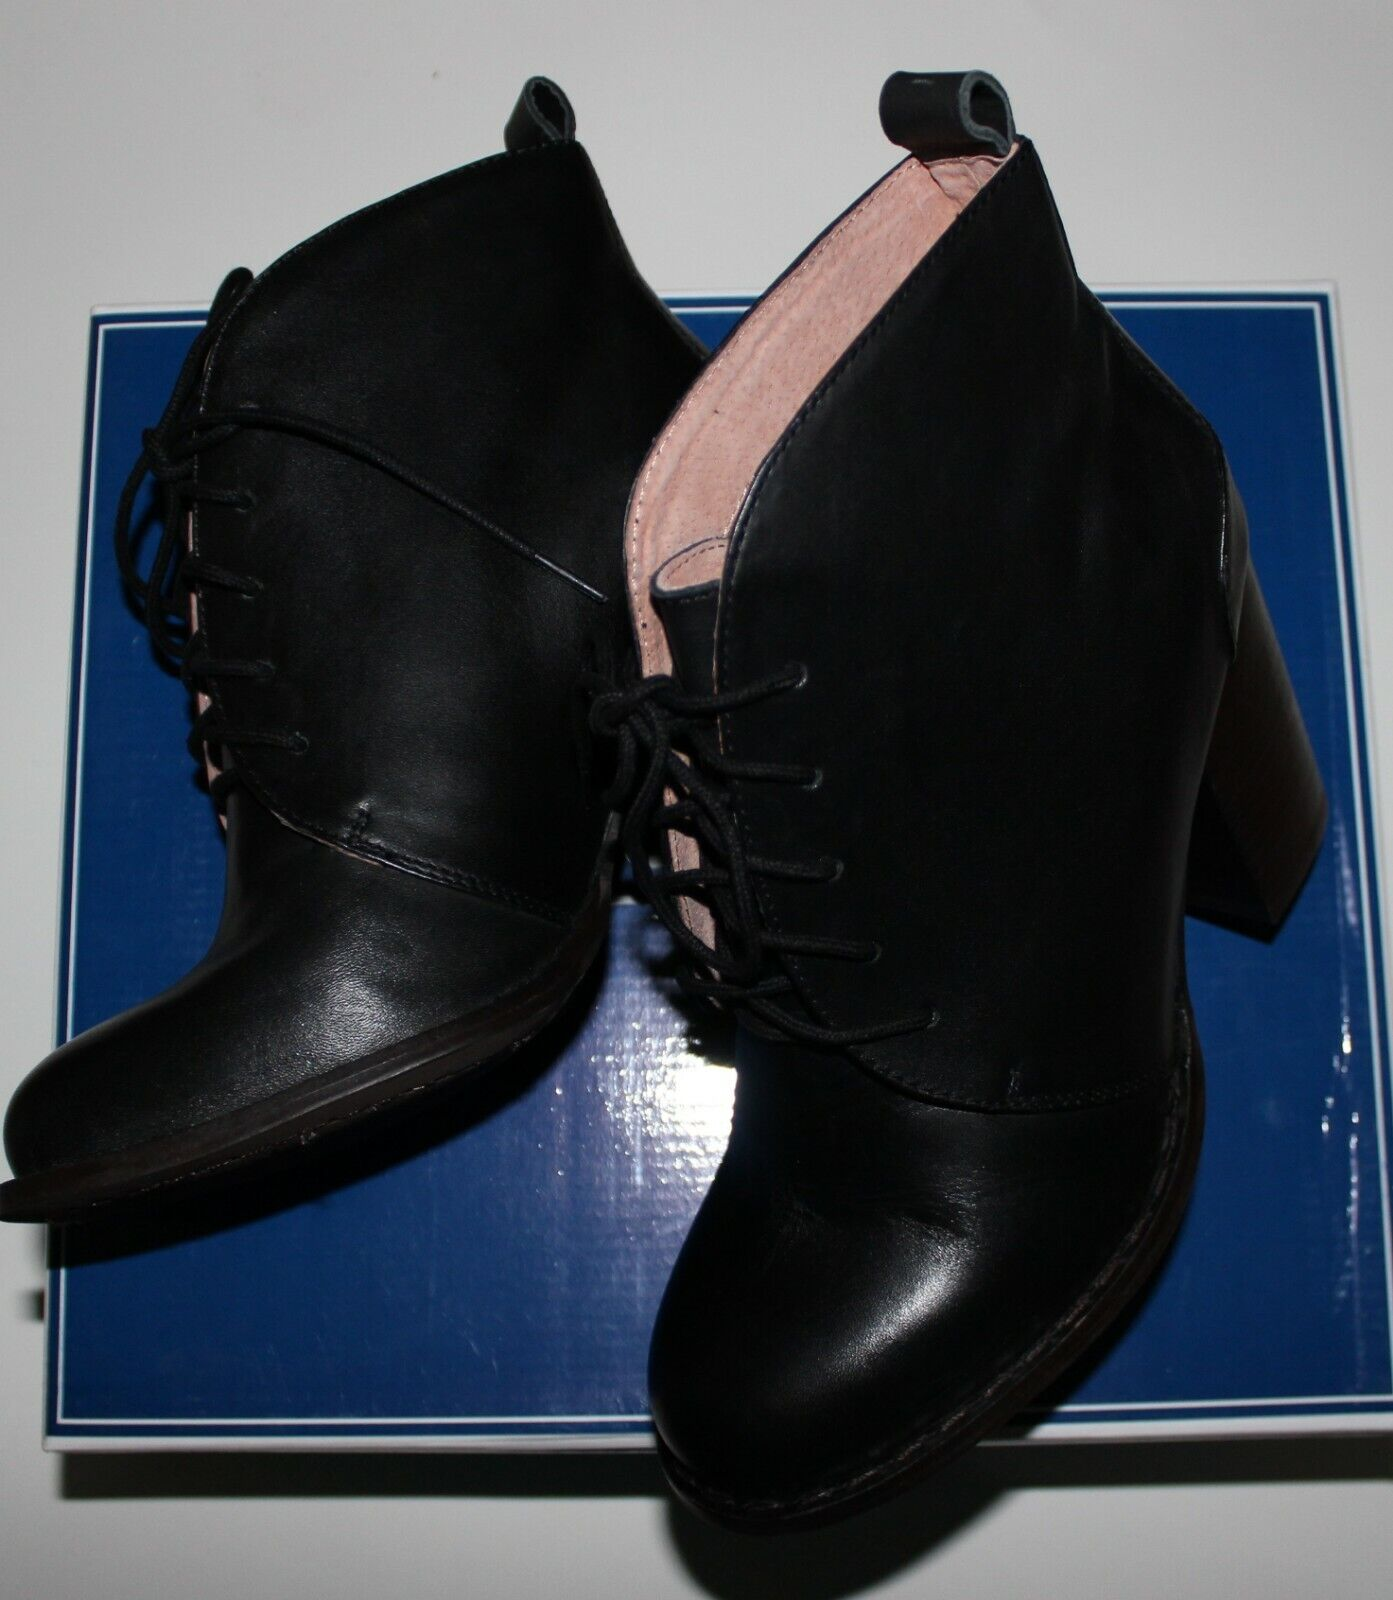 150 SEYCHELLES TOWER BLK LACE UP BOOTIE US 7.5